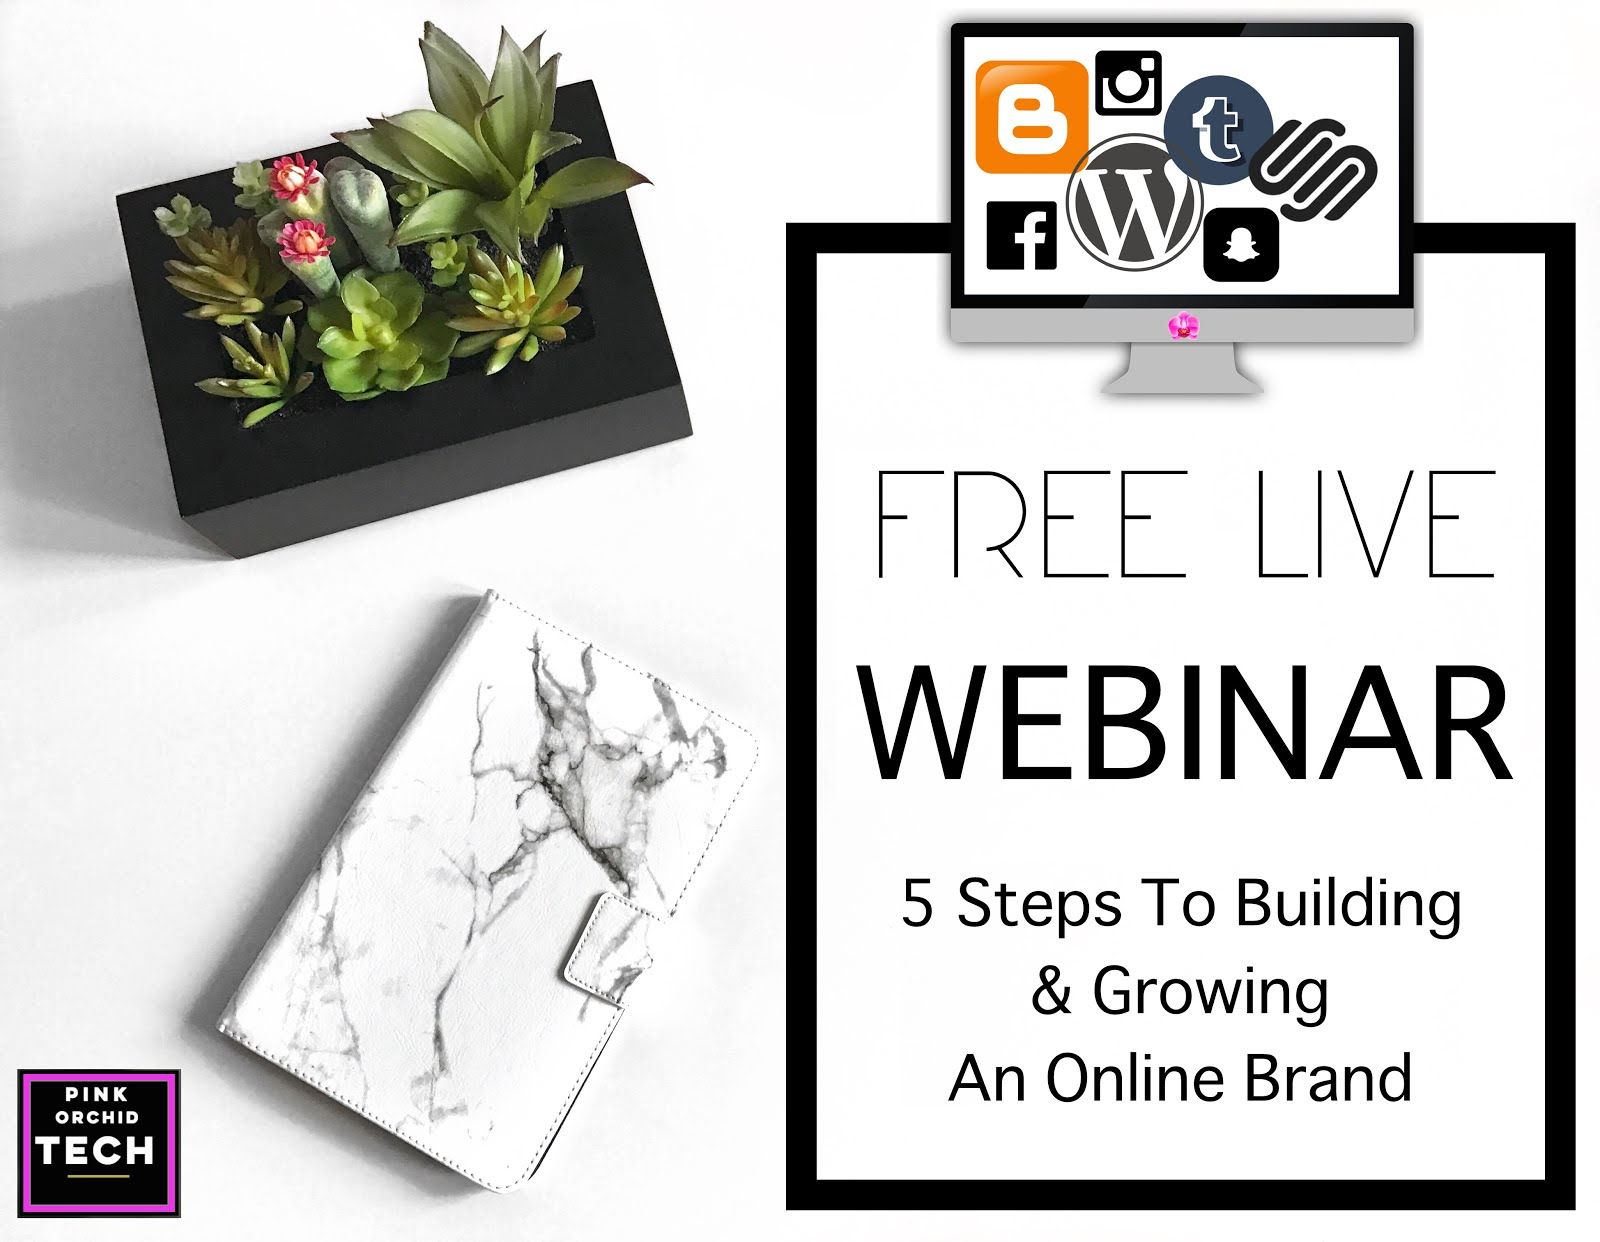 5-Steps-To-Build-And-Grow-An-Online-Brand-Webinar-Vivi-Brizuela-PinkOrchidTech